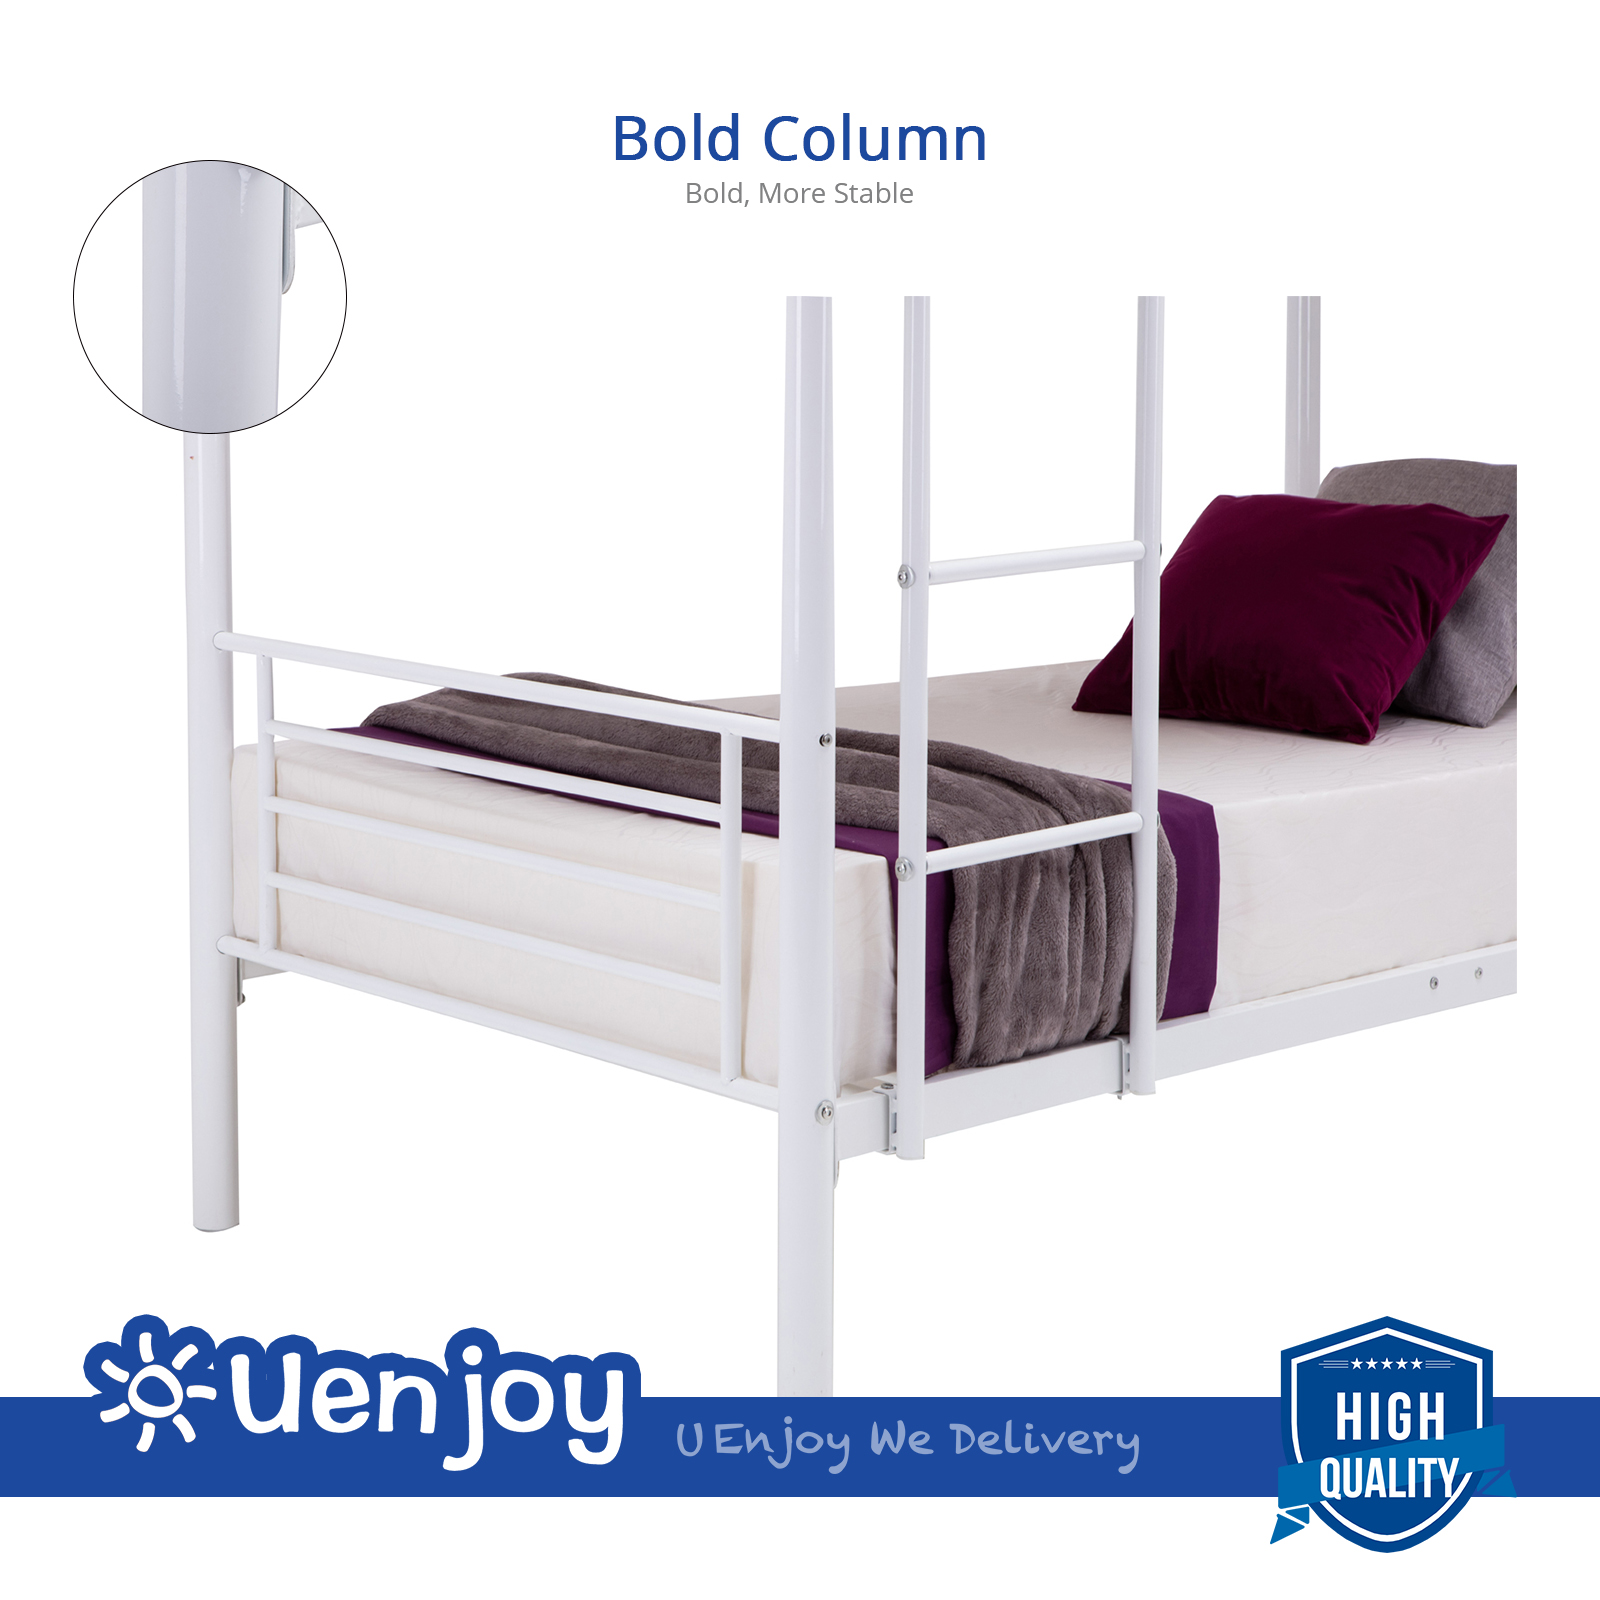 Princess loft bed kmart beds for adults oeuf perch bunk for Affordable quality bedroom furniture